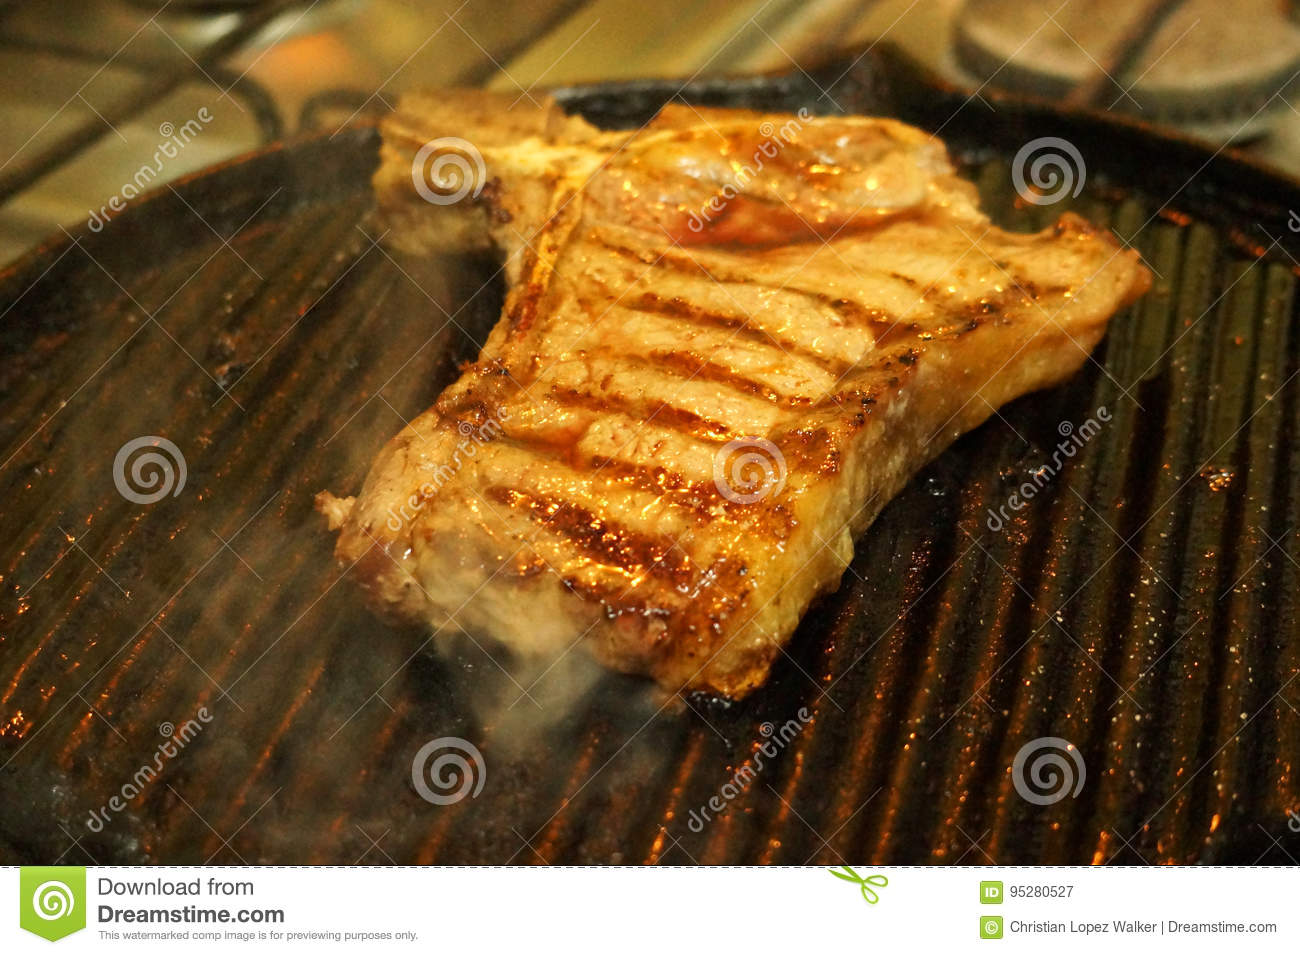 how to cook t bone steak on stove